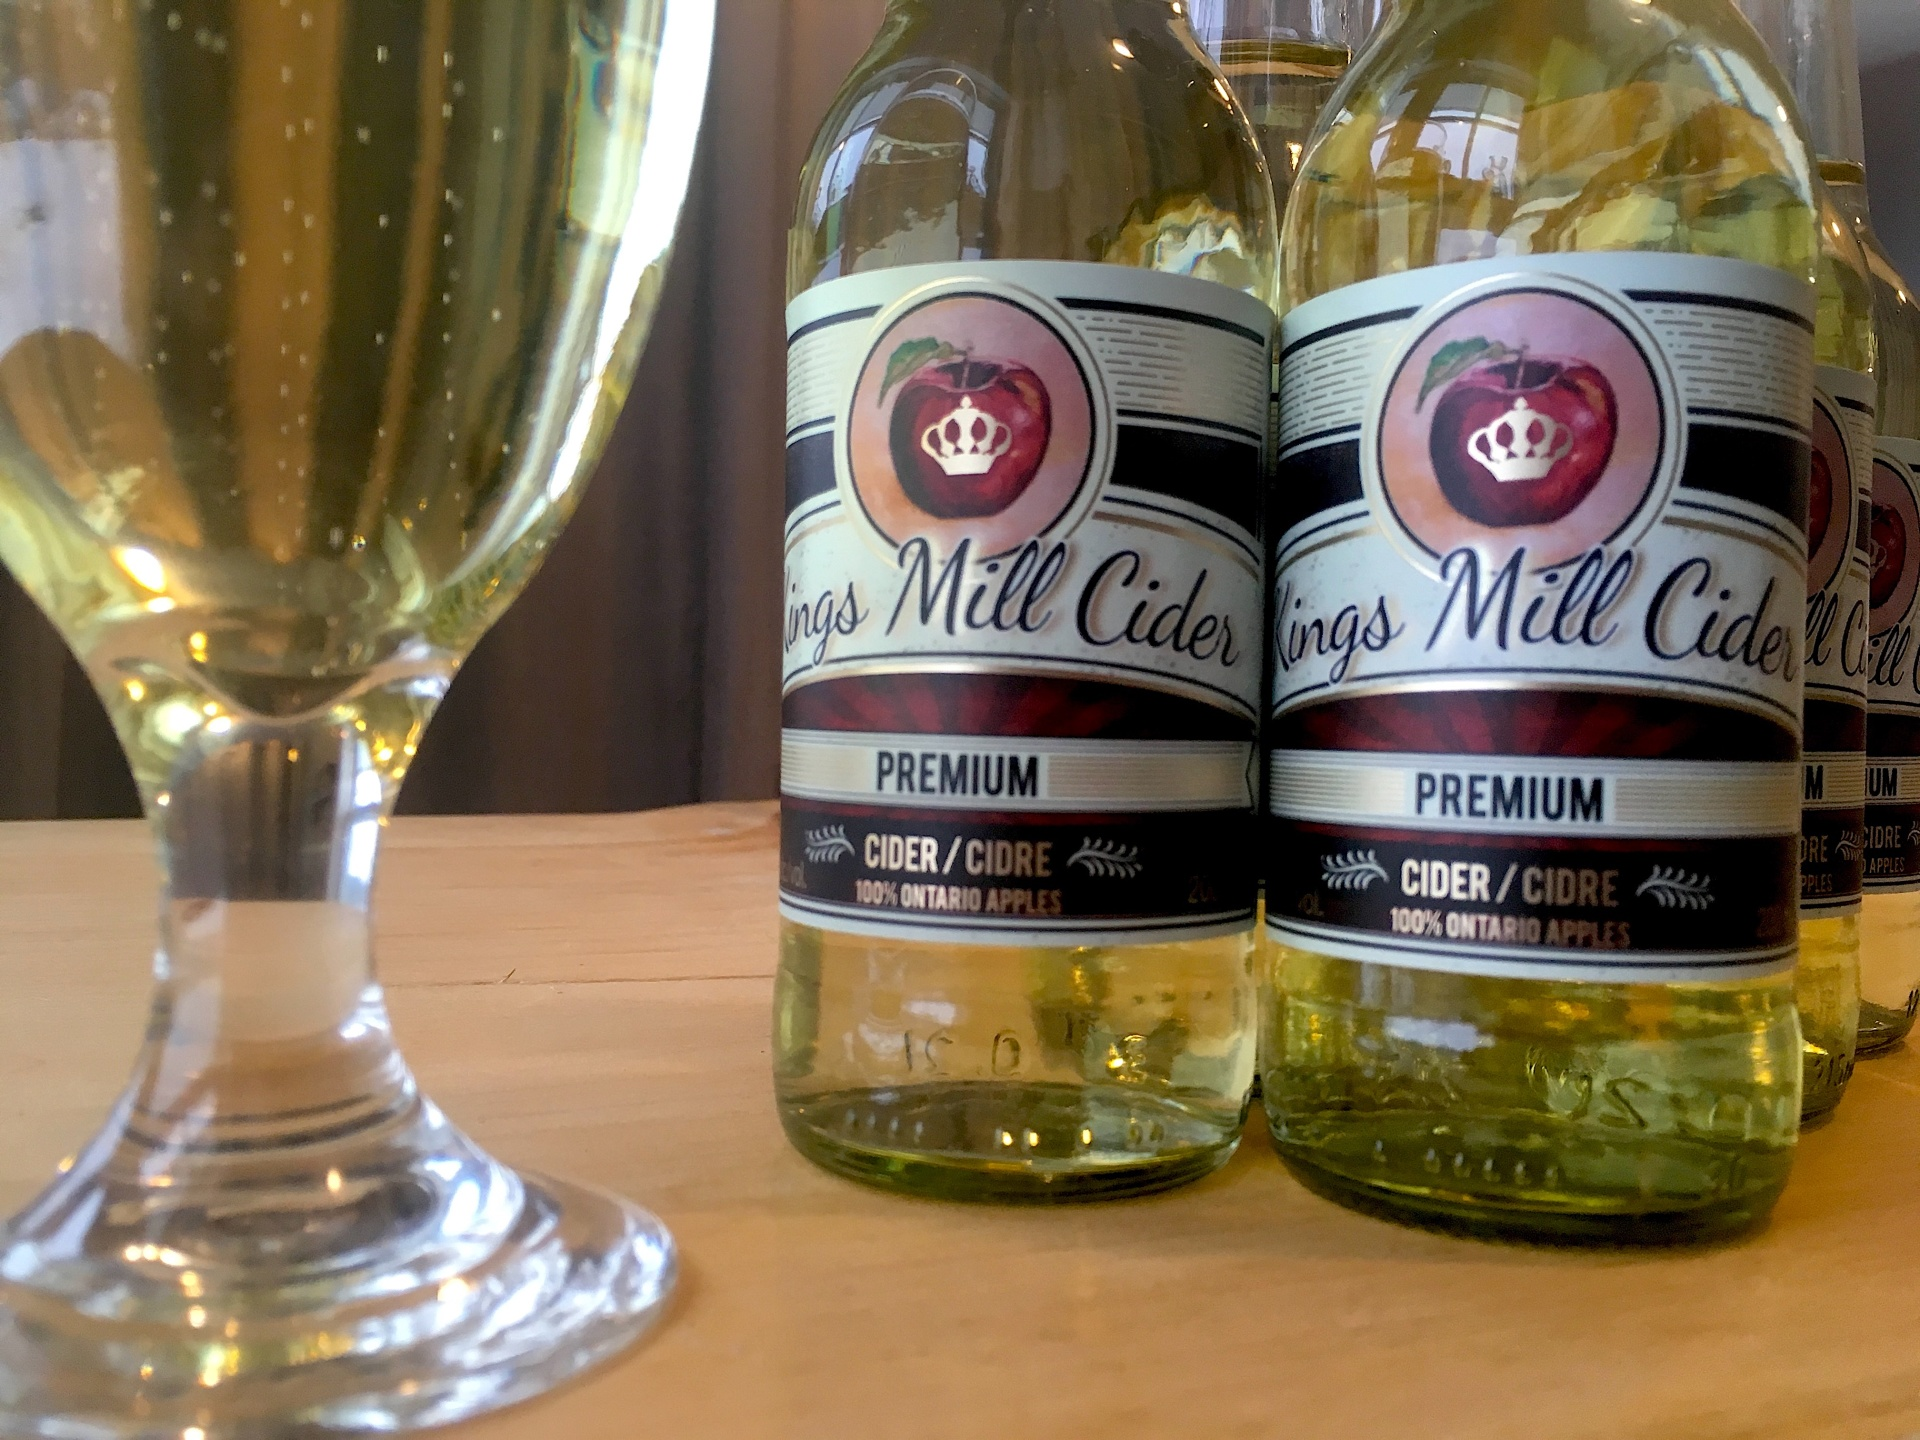 Premium Kings Mill Cider - Ontario Craft Cider